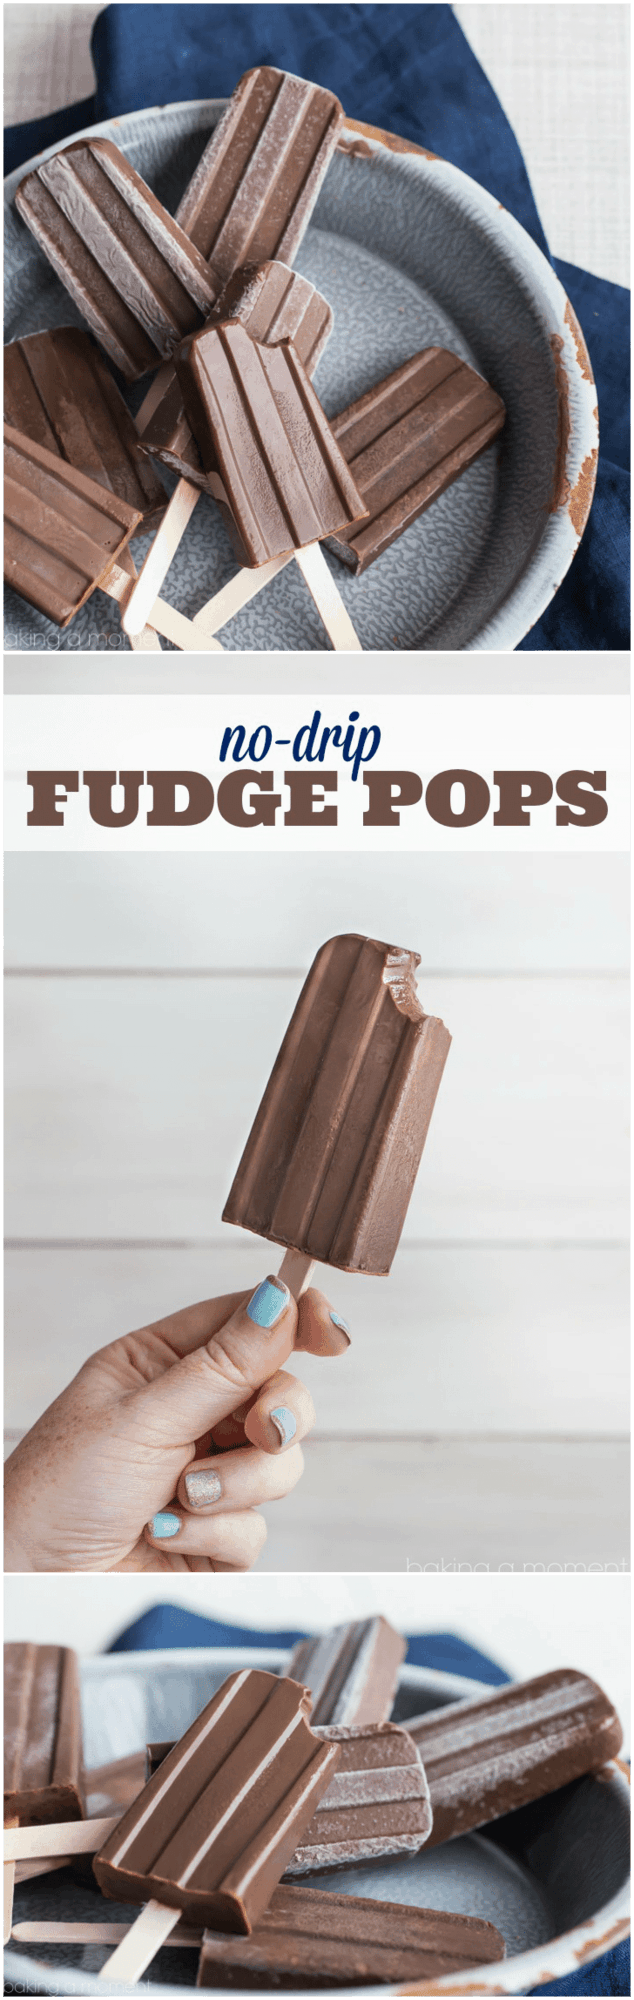 No-Drip Homemade Fudge Pops/Fudgesicles! My kids love these and I don't worry about giving them to them because they're so much less messy to eat than the regular kind.